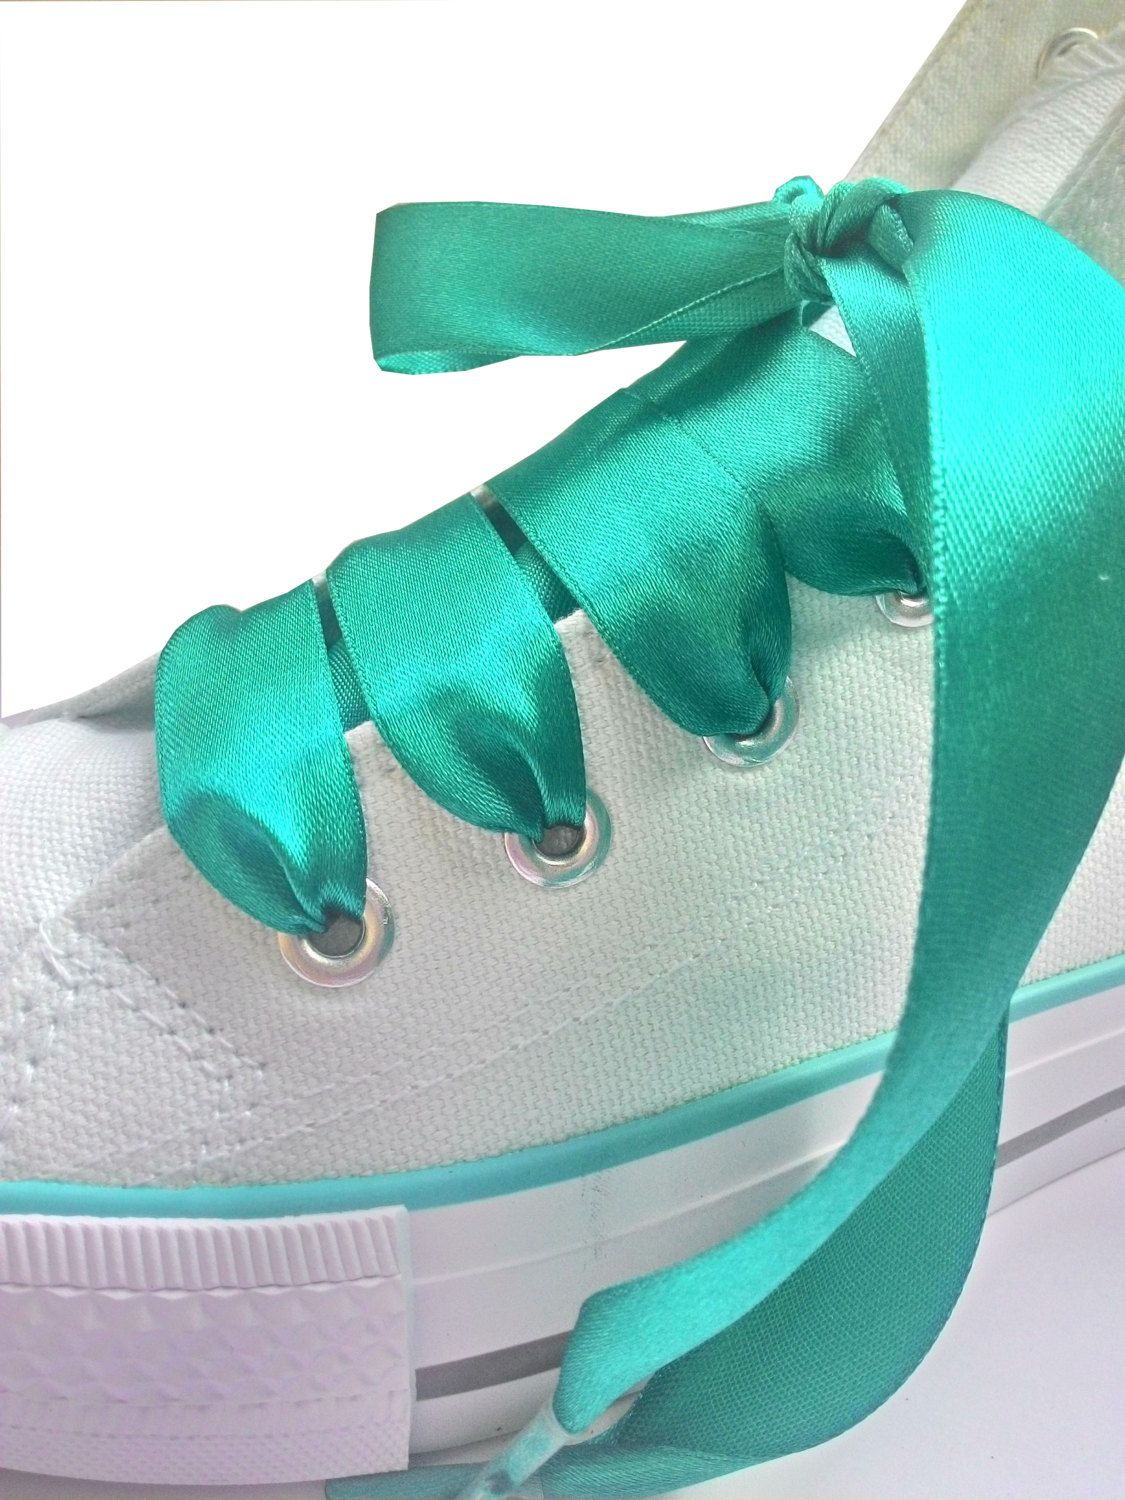 a8aac14a33a3f7 Satin shoelaces Shoestrings Satin ribbon shoe laces for Converse Nike Vans